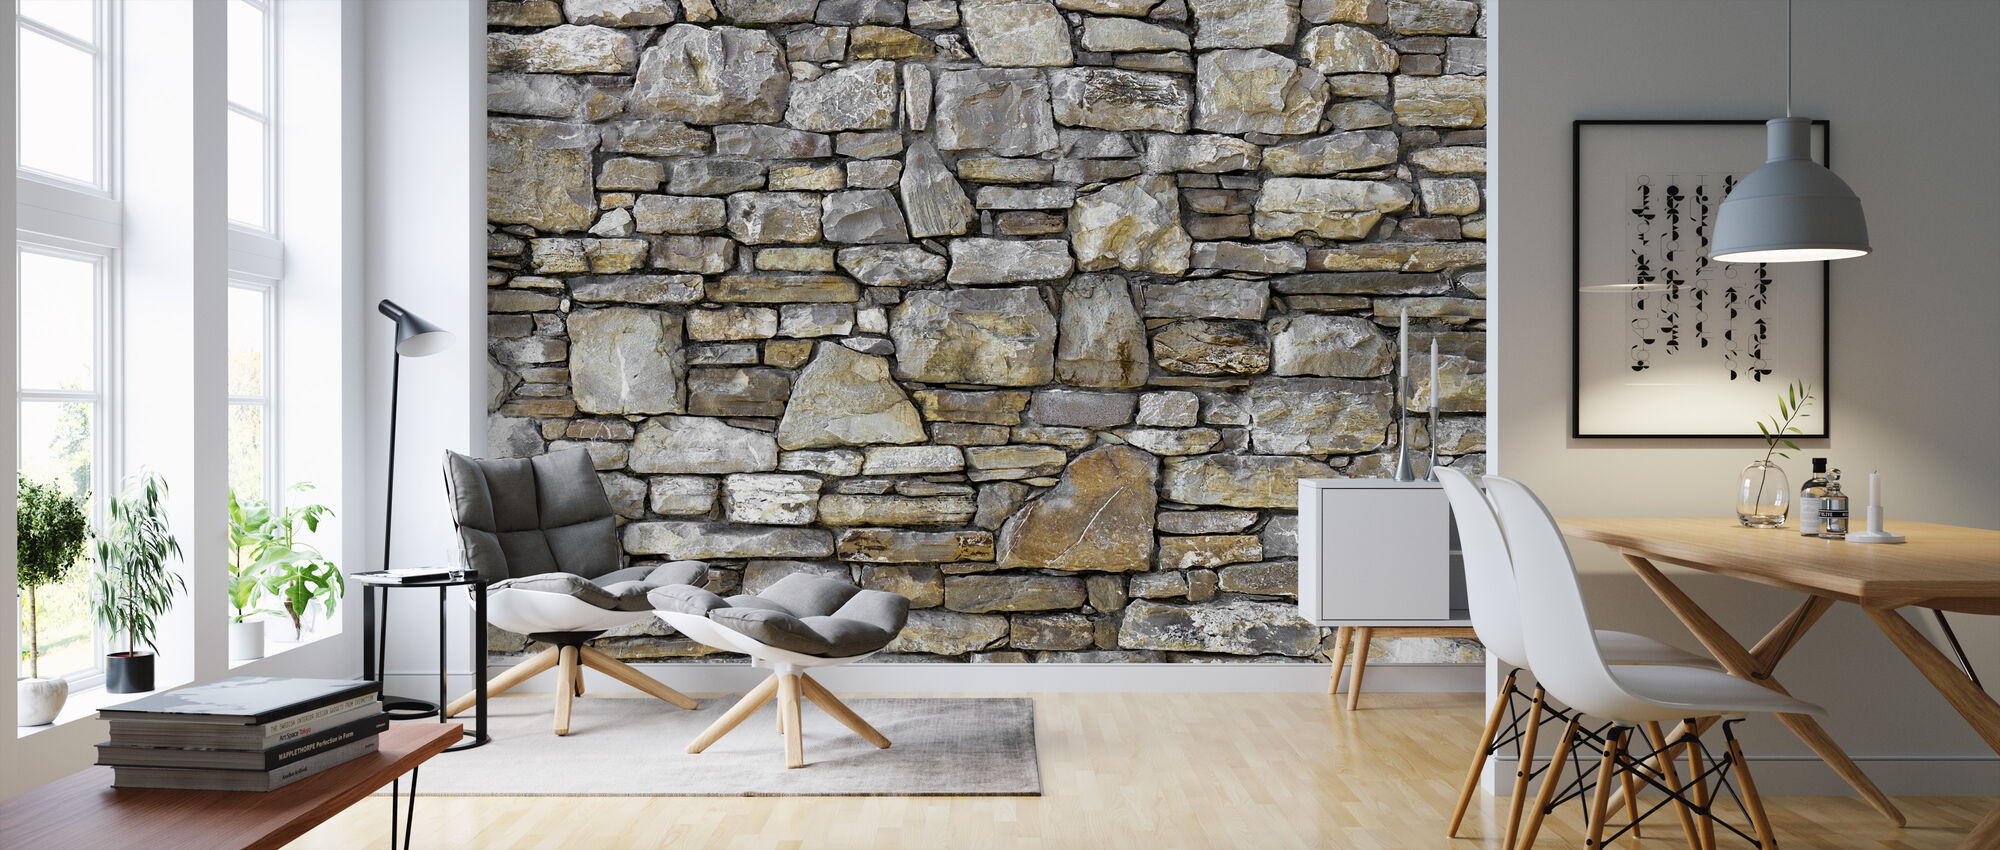 Rustic Stone Wall - Wallpaper - Living Room